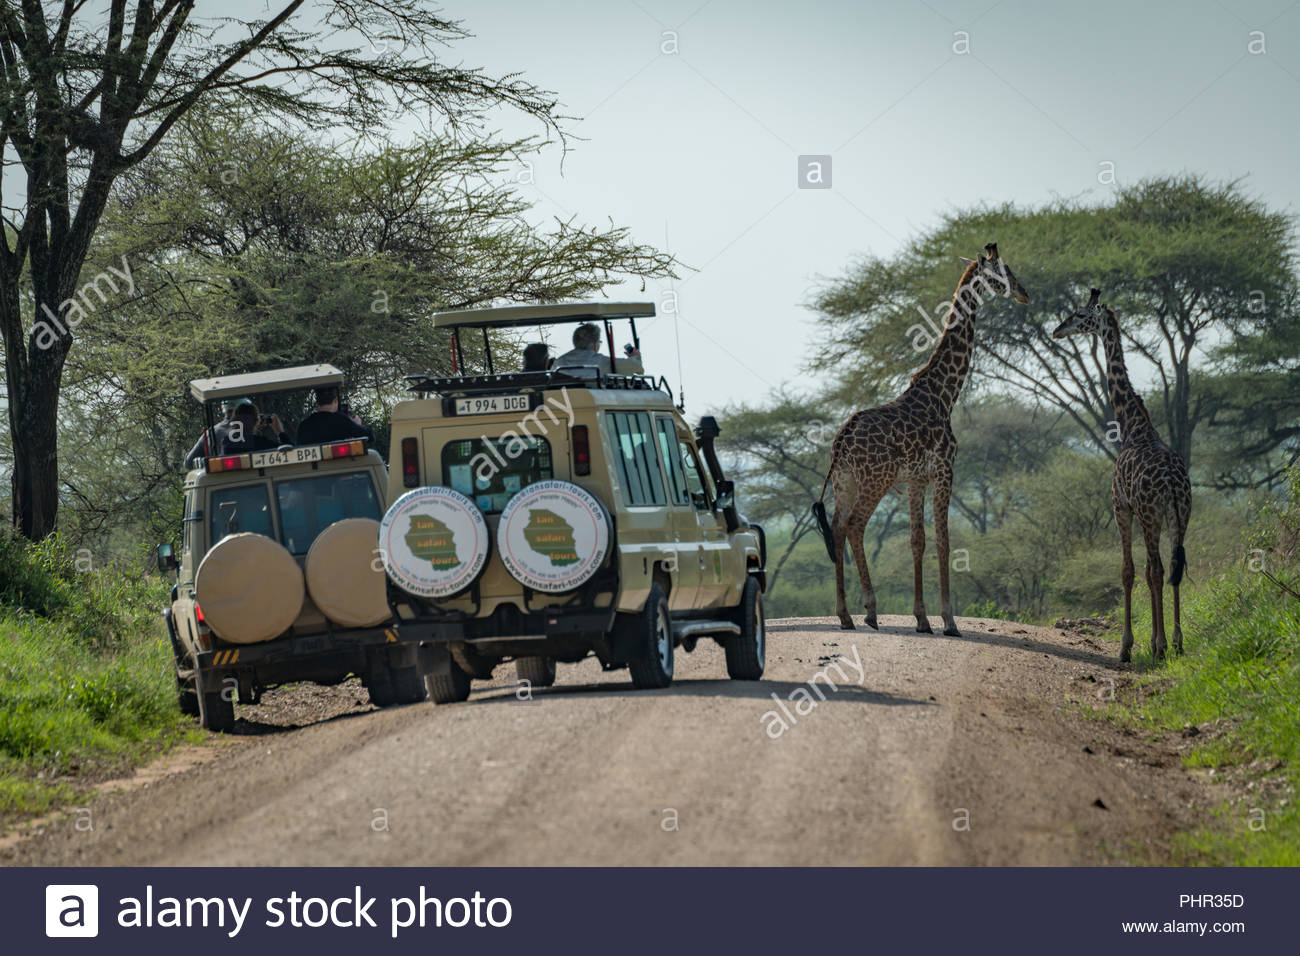 Masai giraffe watched by tourists in jeeps - Stock Image